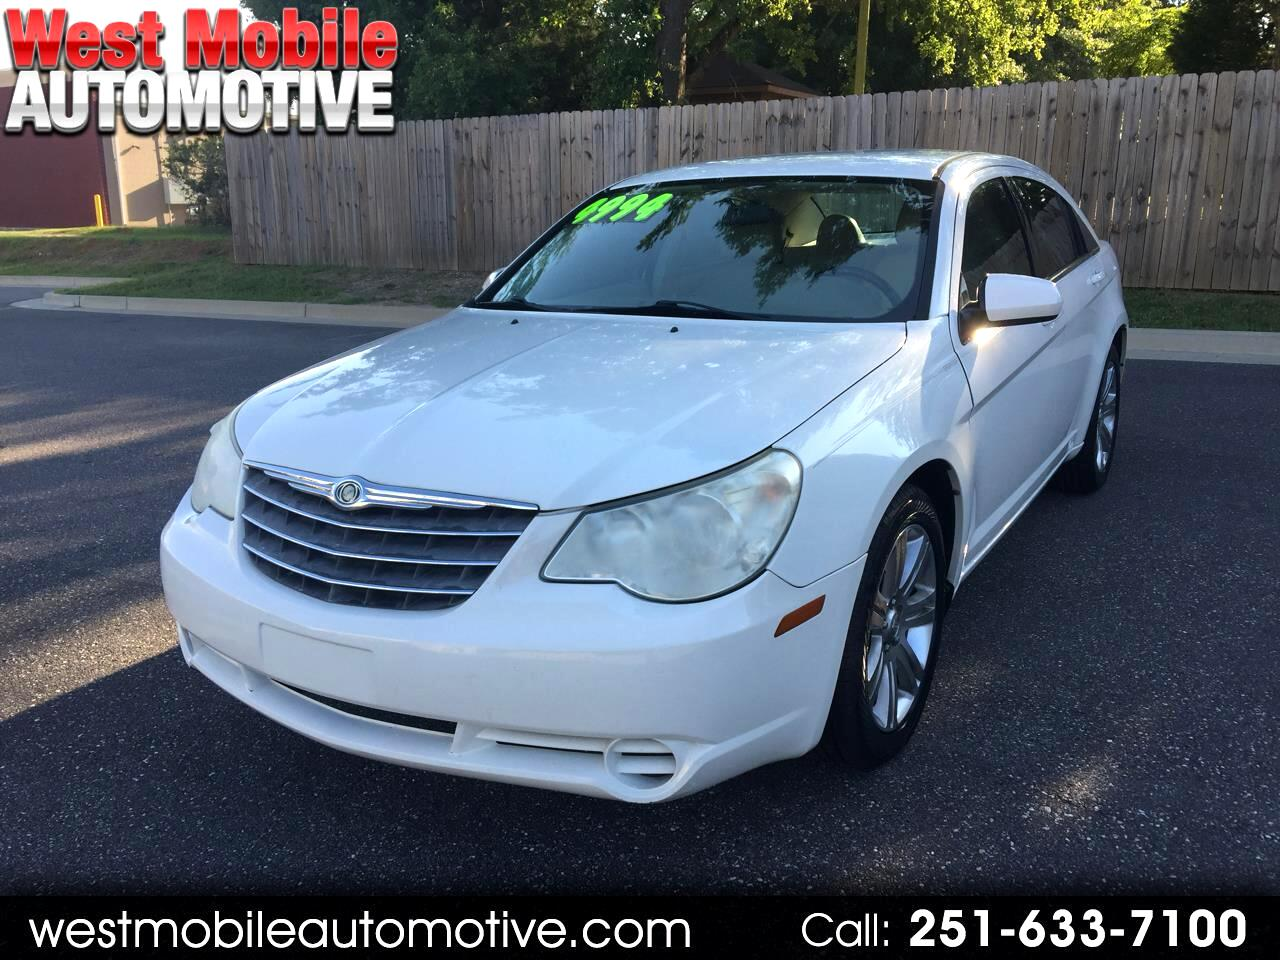 Cars For Sale Mobile Al >> Used Cars For Sale Mobile Al 36695 West Mobile Automotive